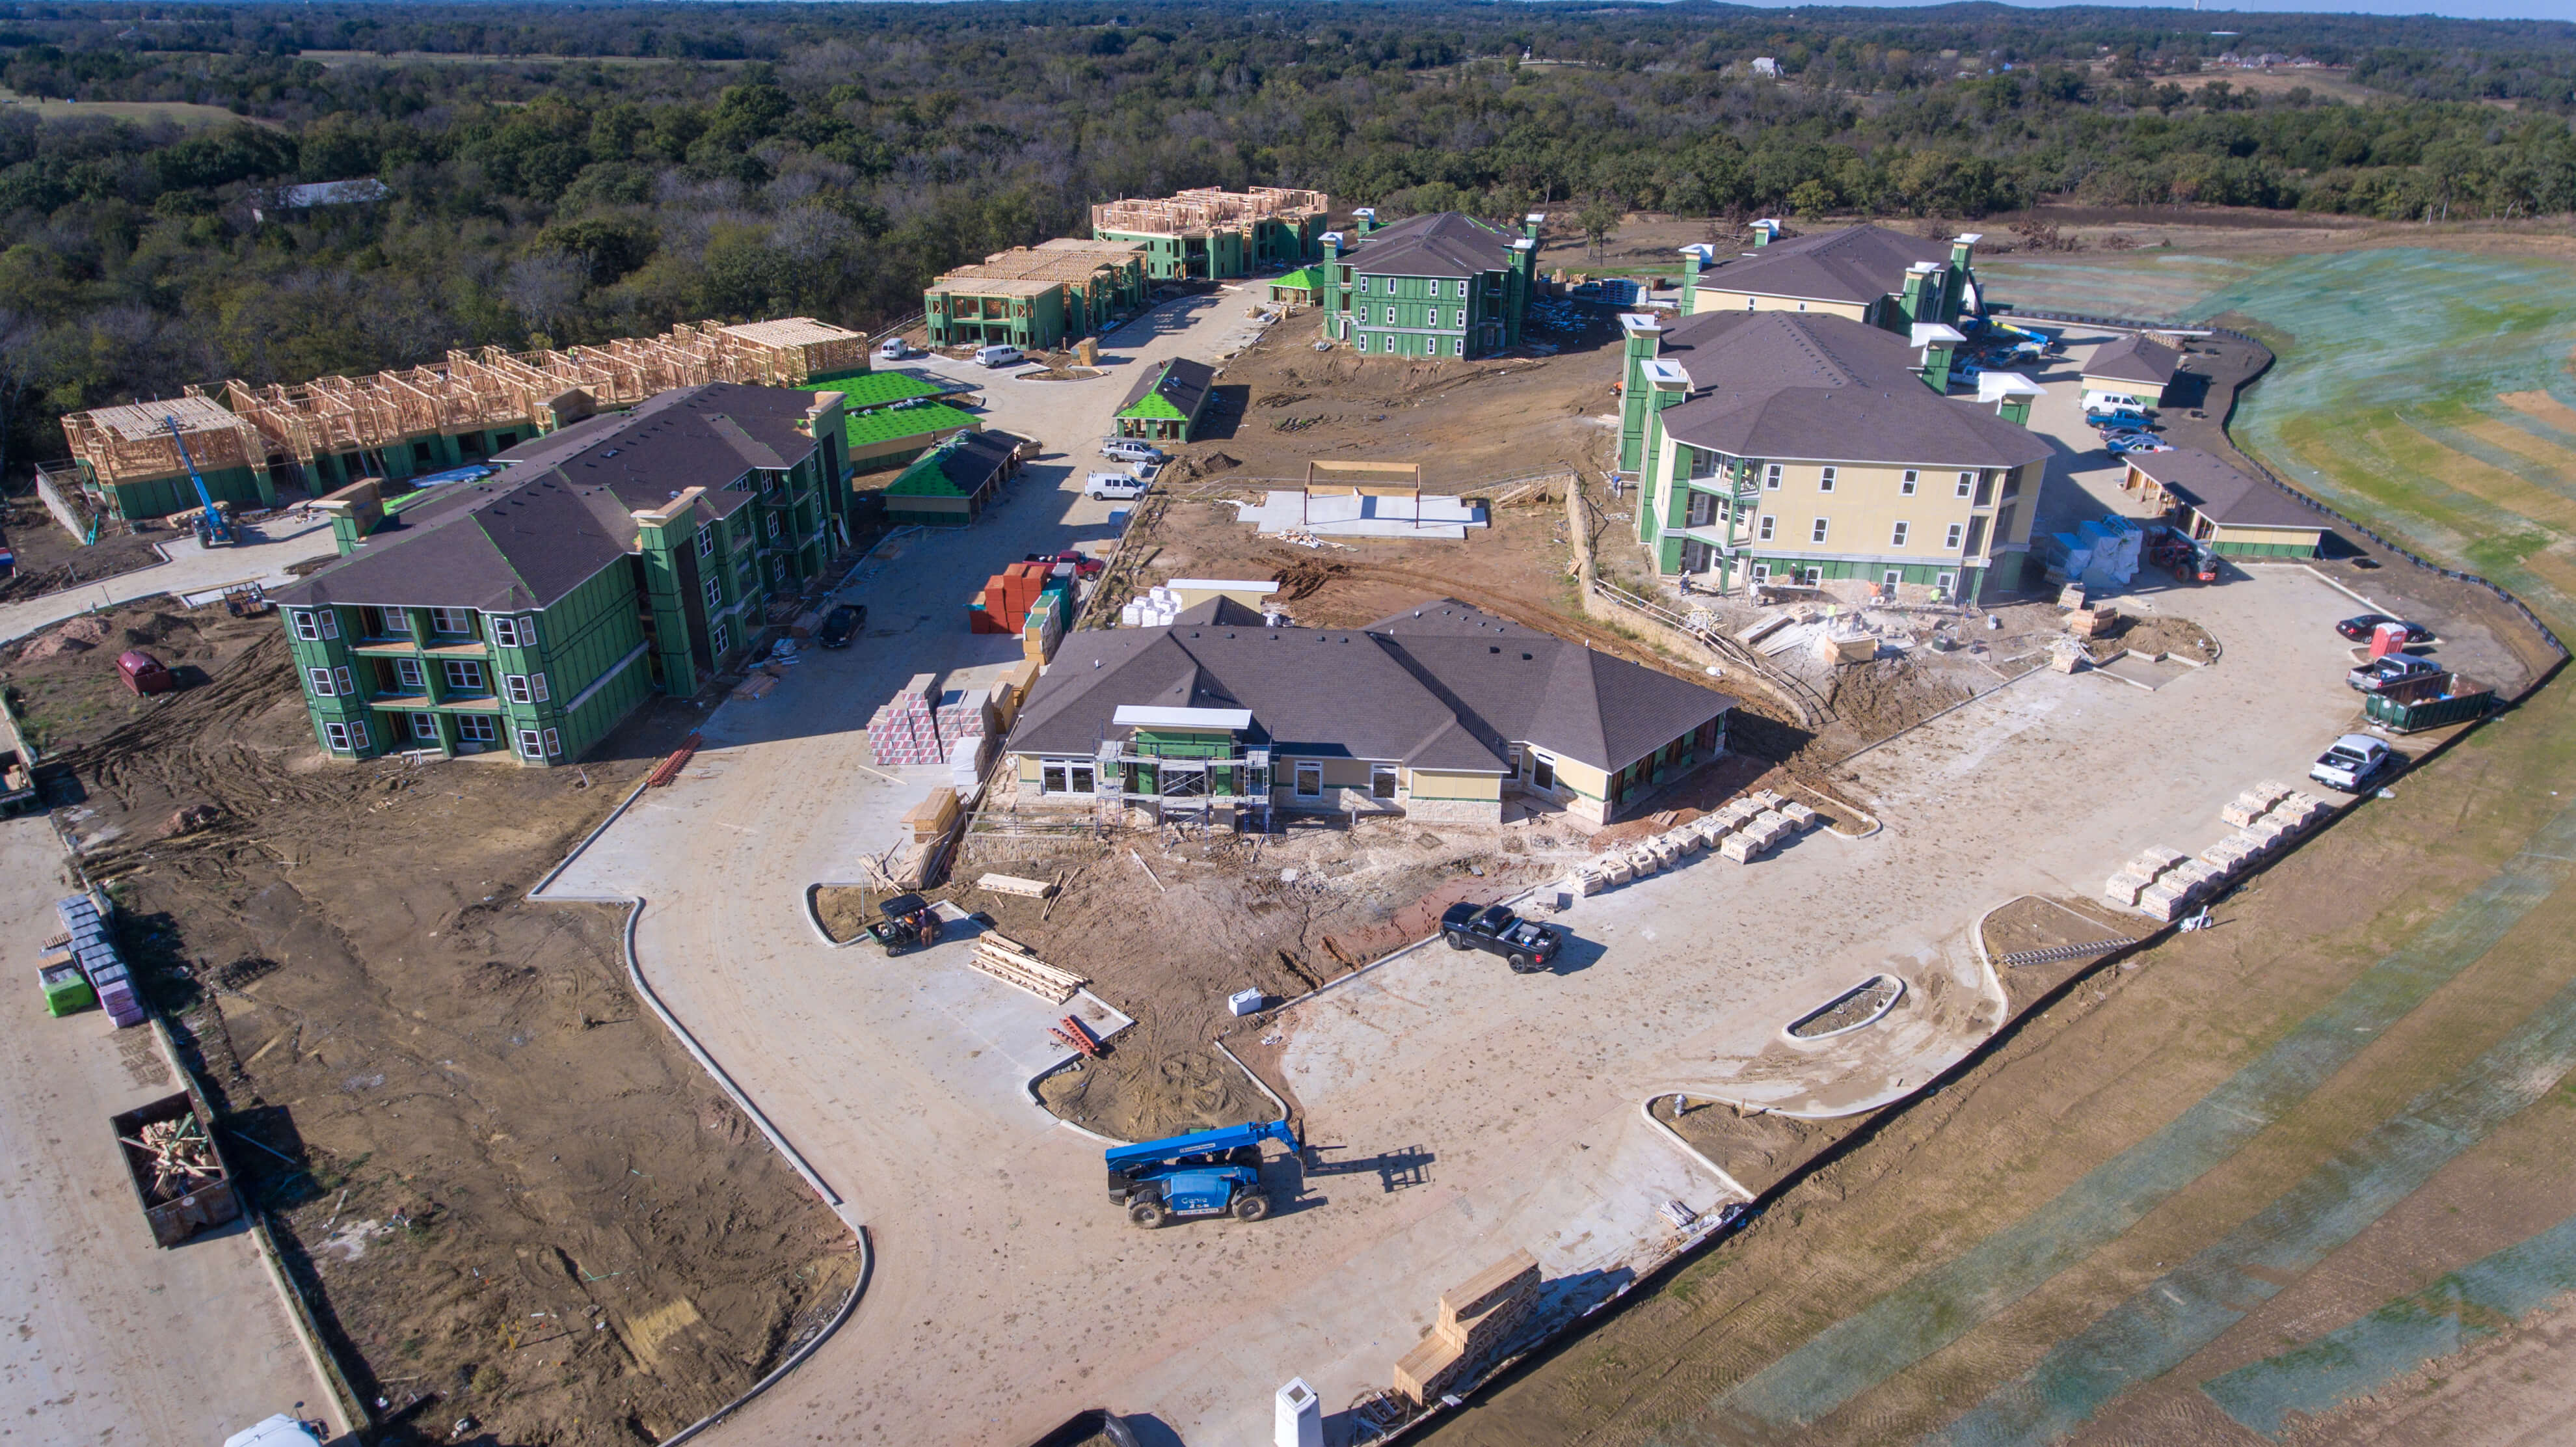 The Residence at Gateway Village Construction Site Aerial View